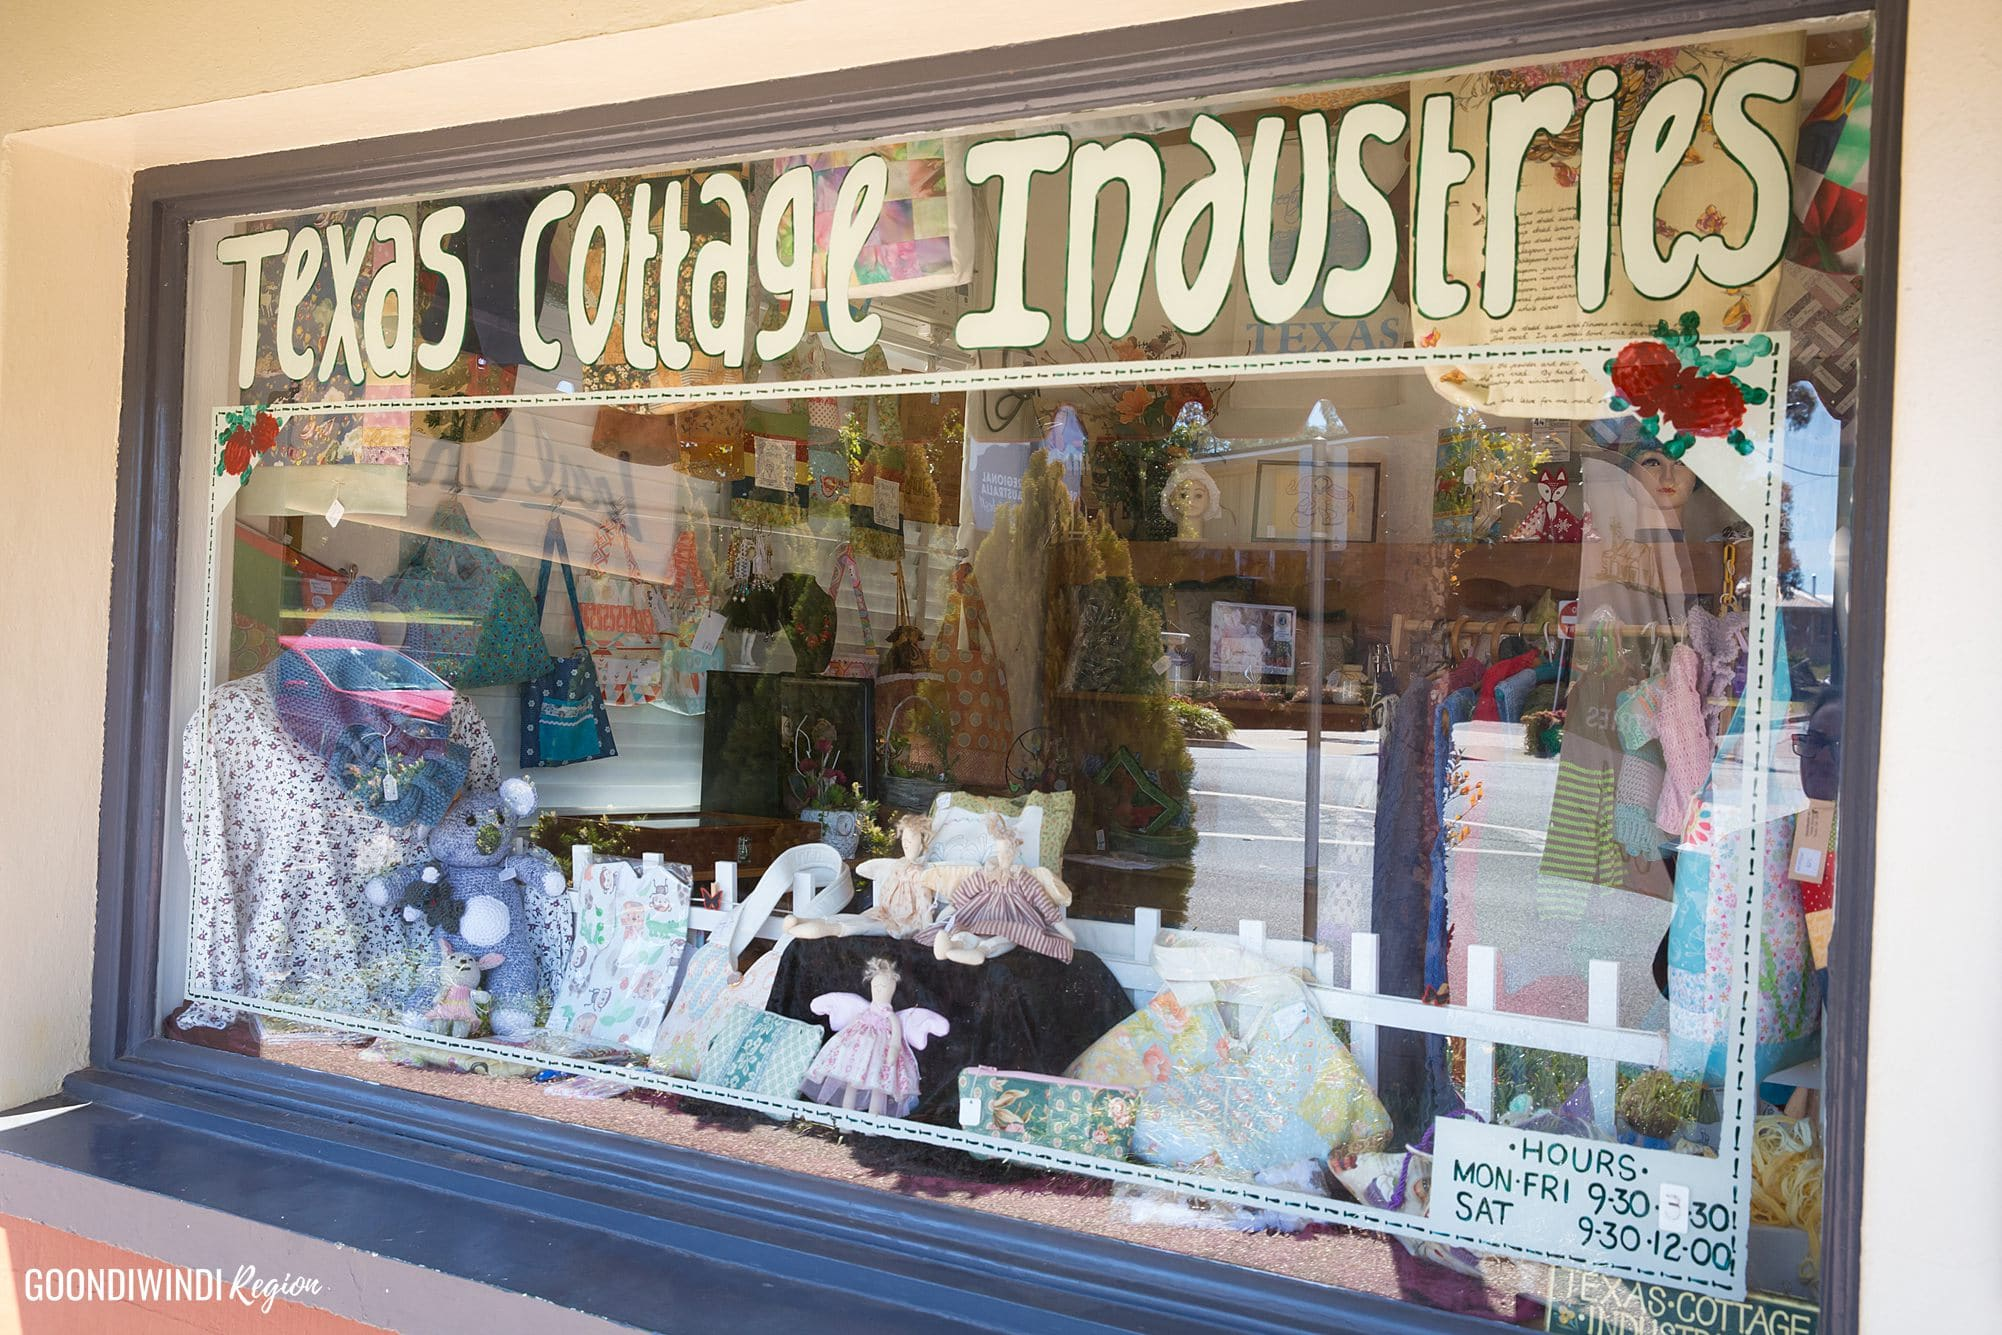 Texas Cottage Industries